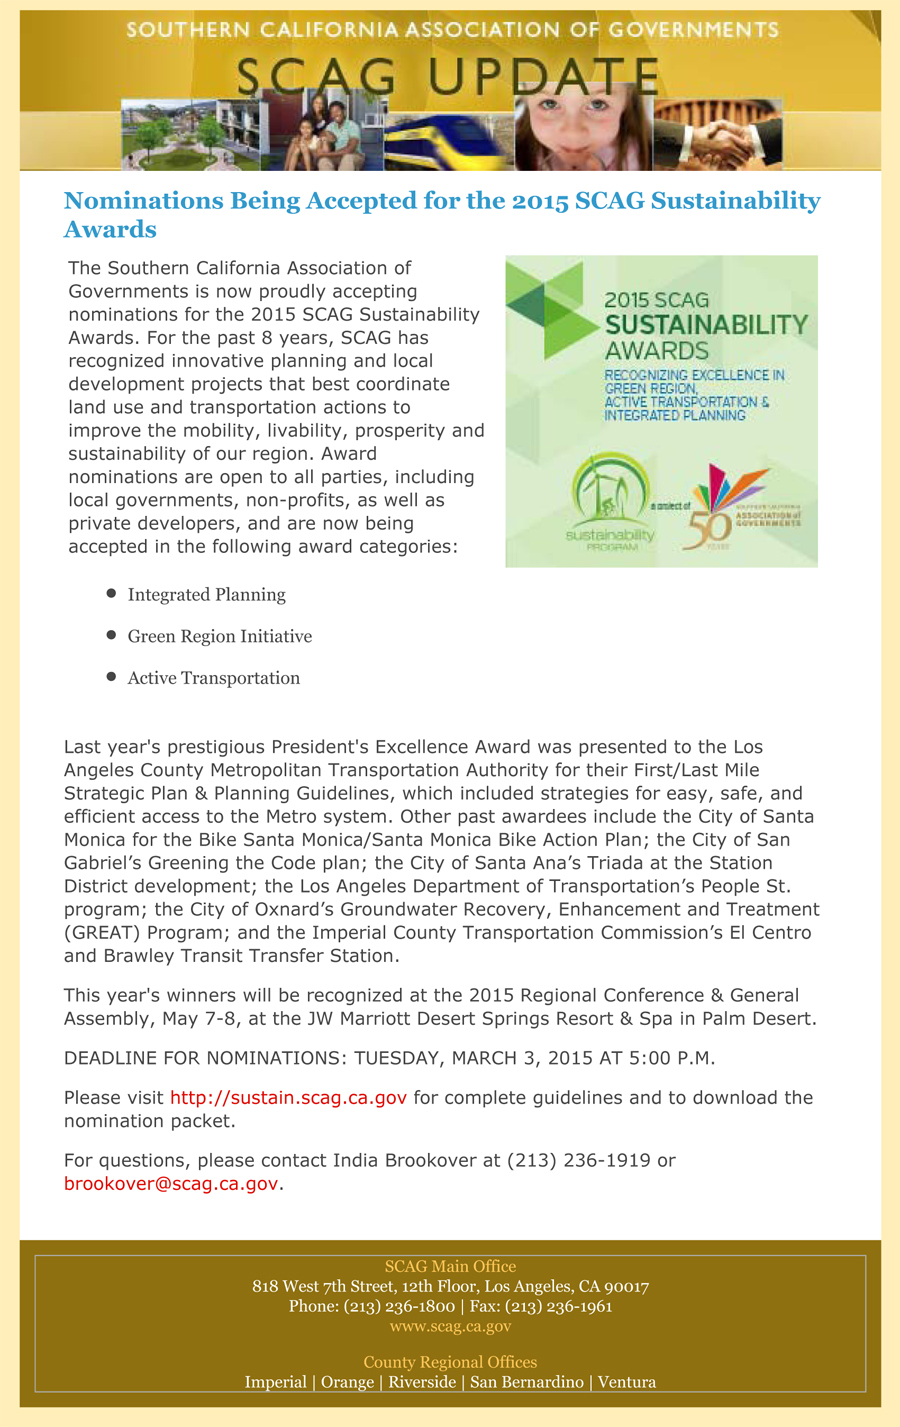 Nominations Being Accepted for the 2015 SCAG Sustainability Awar